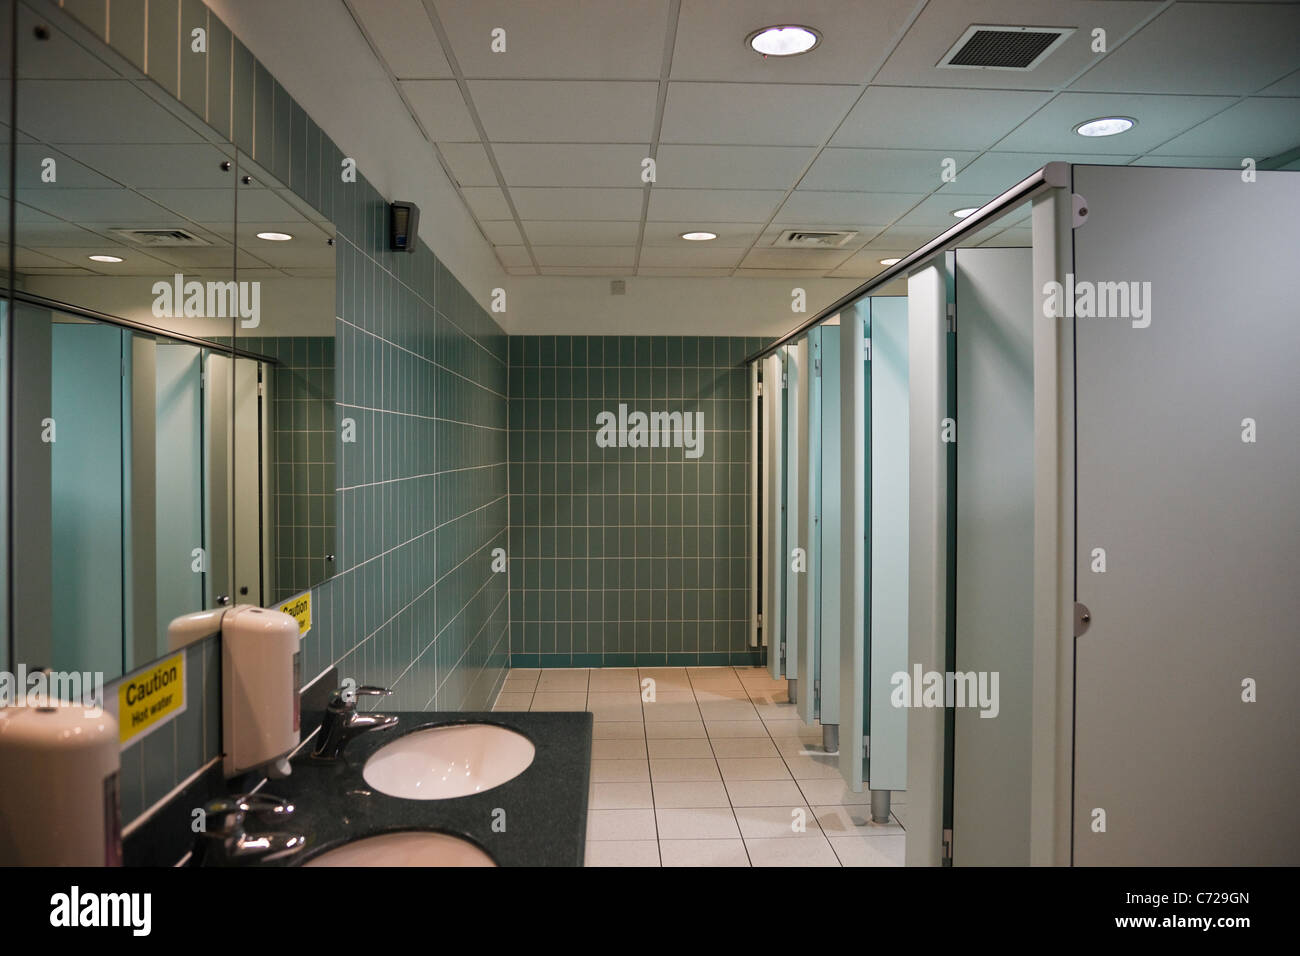 Clean modern public ladies' toilets with hand basins and toilet cubicles and tiled walls. England, UK, Britain - Stock Image